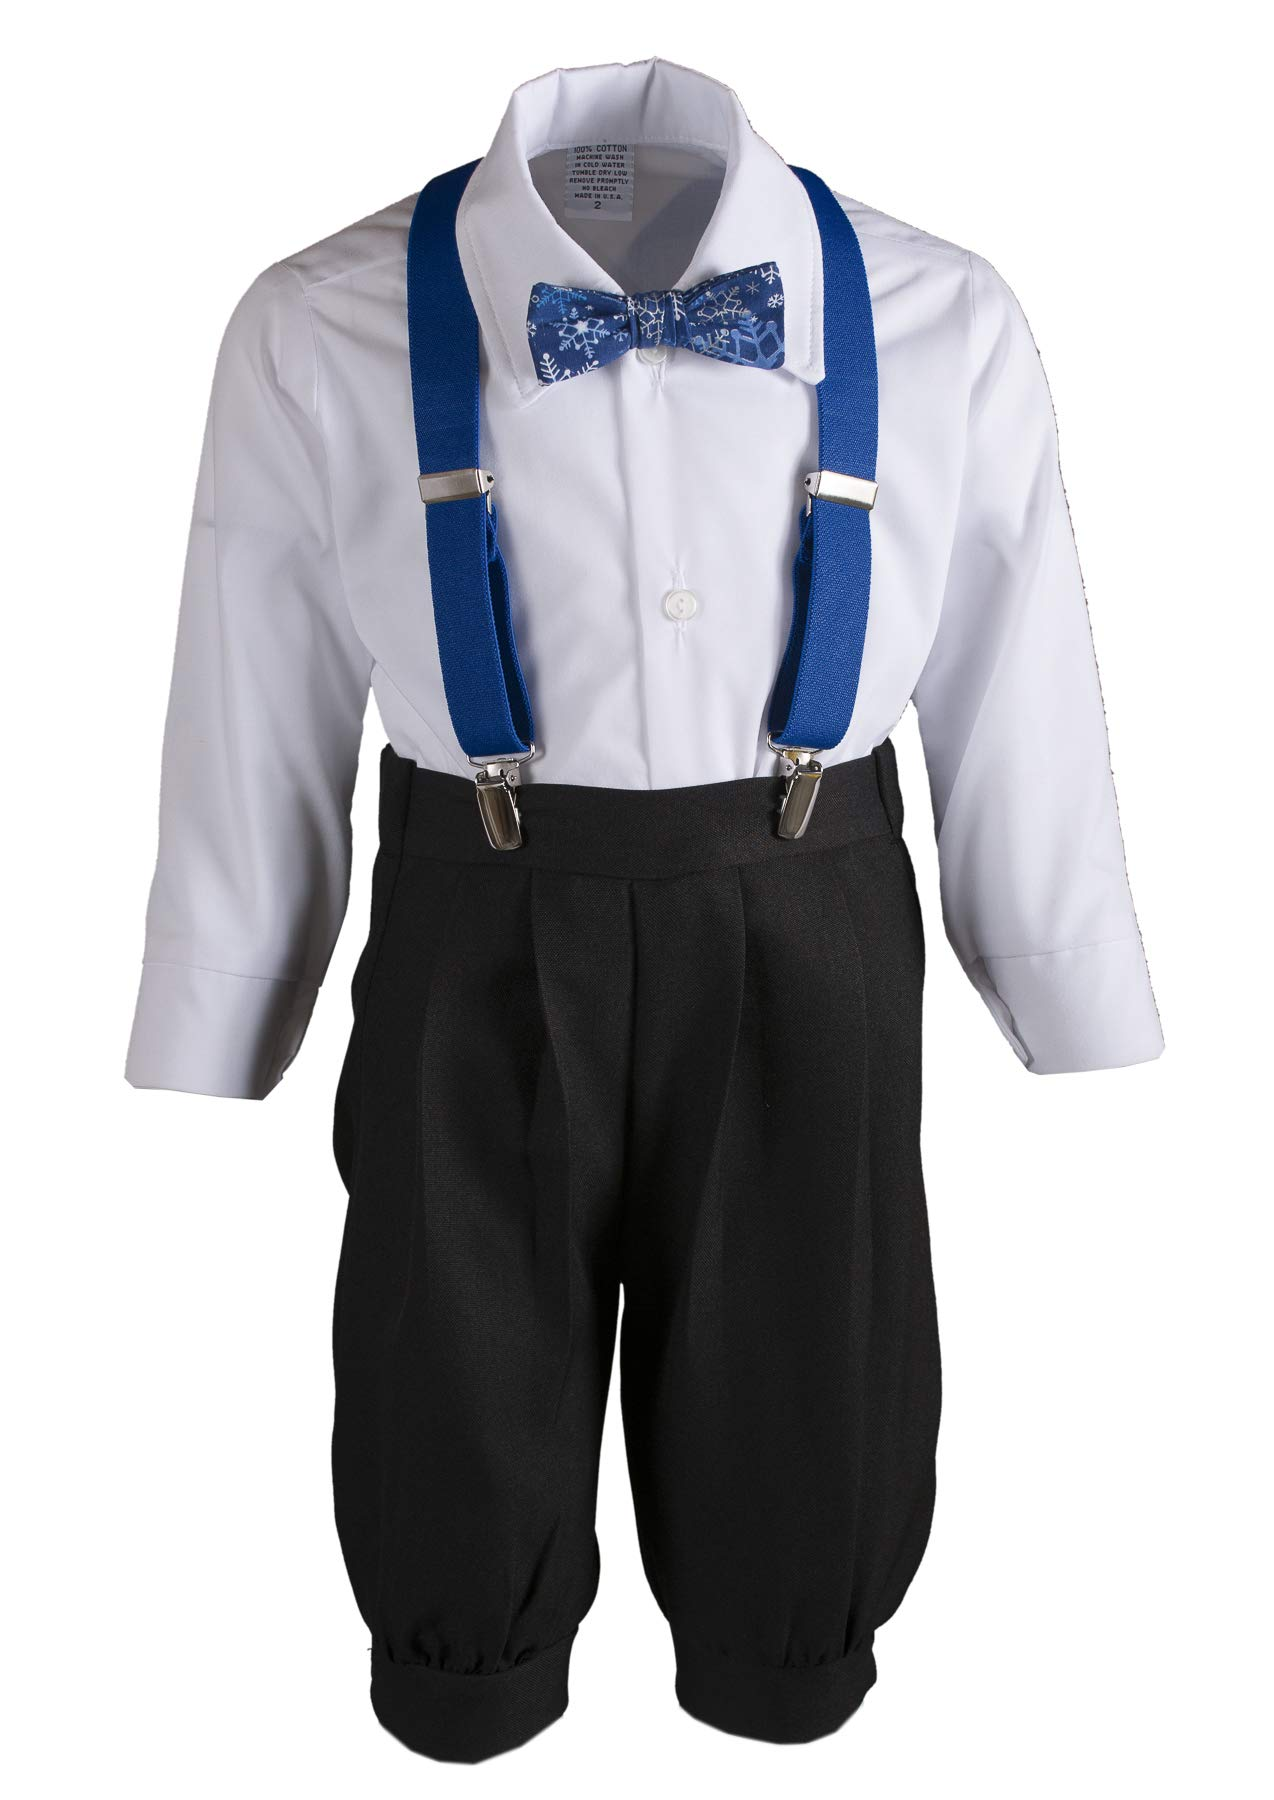 Boys Black Knickers Pageboy Cap with Royal Blue Suspenders & Snowflake Bow Tie (6B) by Tuxgear (Image #2)